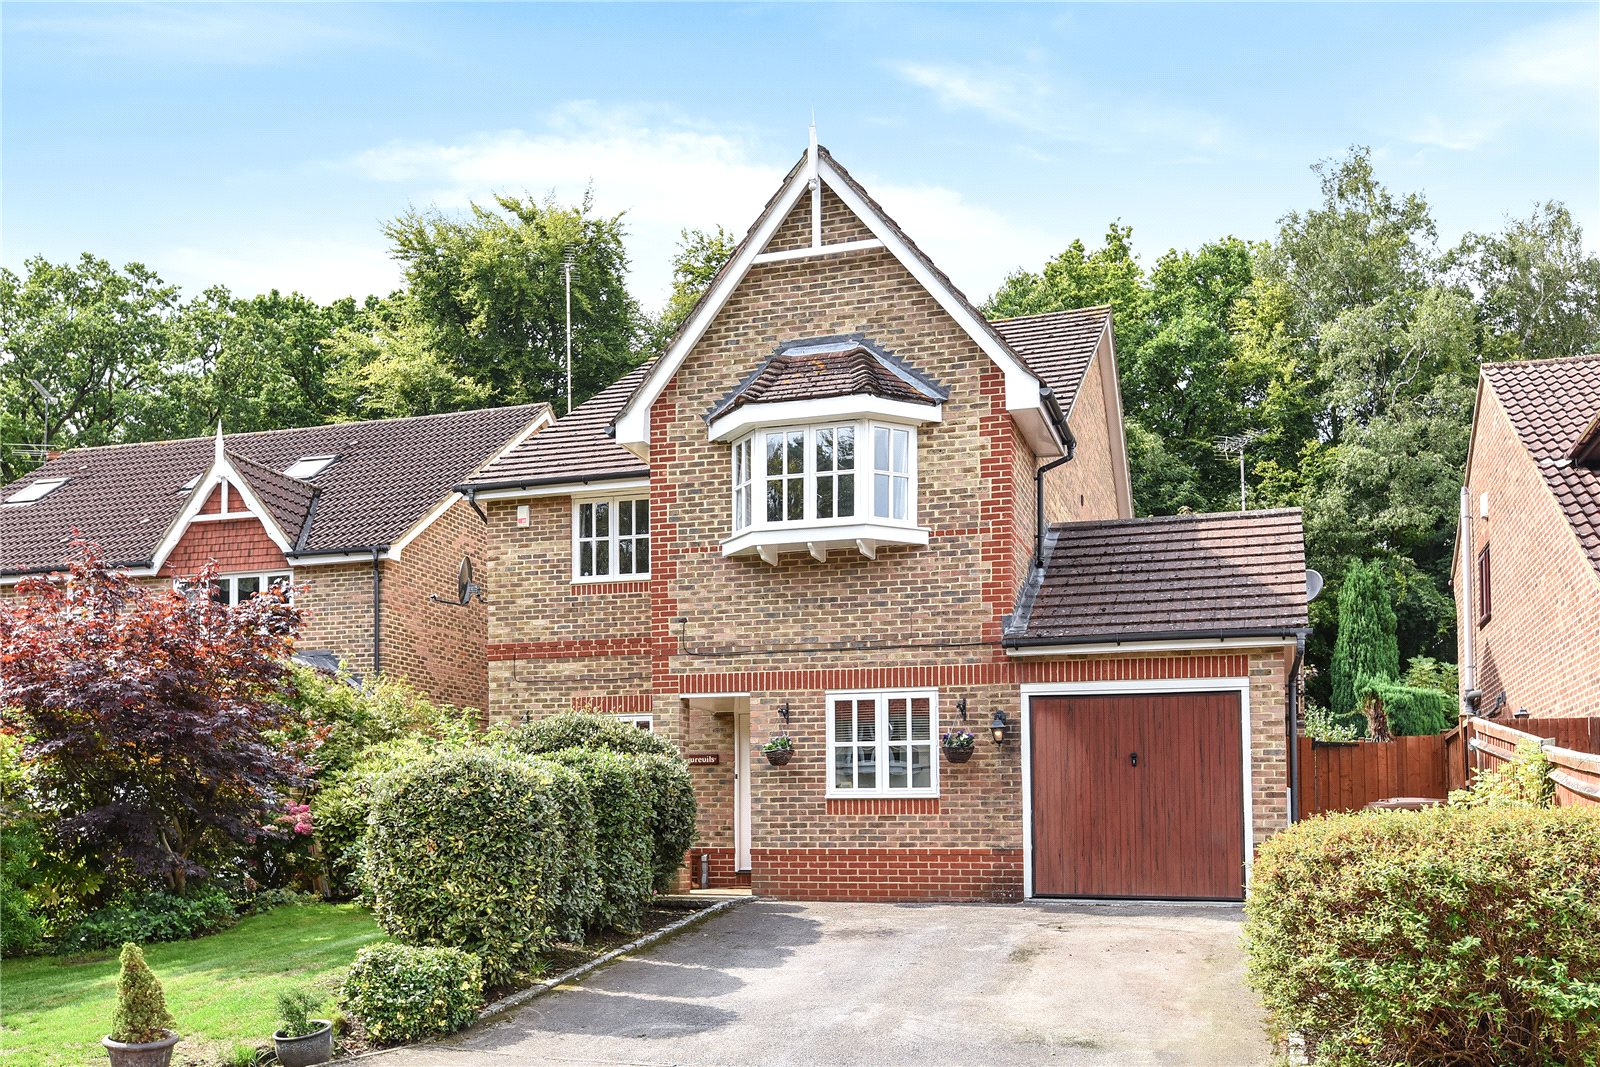 4 Bedrooms Detached House for sale in Kingsley Close, Crowthorne, Berkshire, RG45